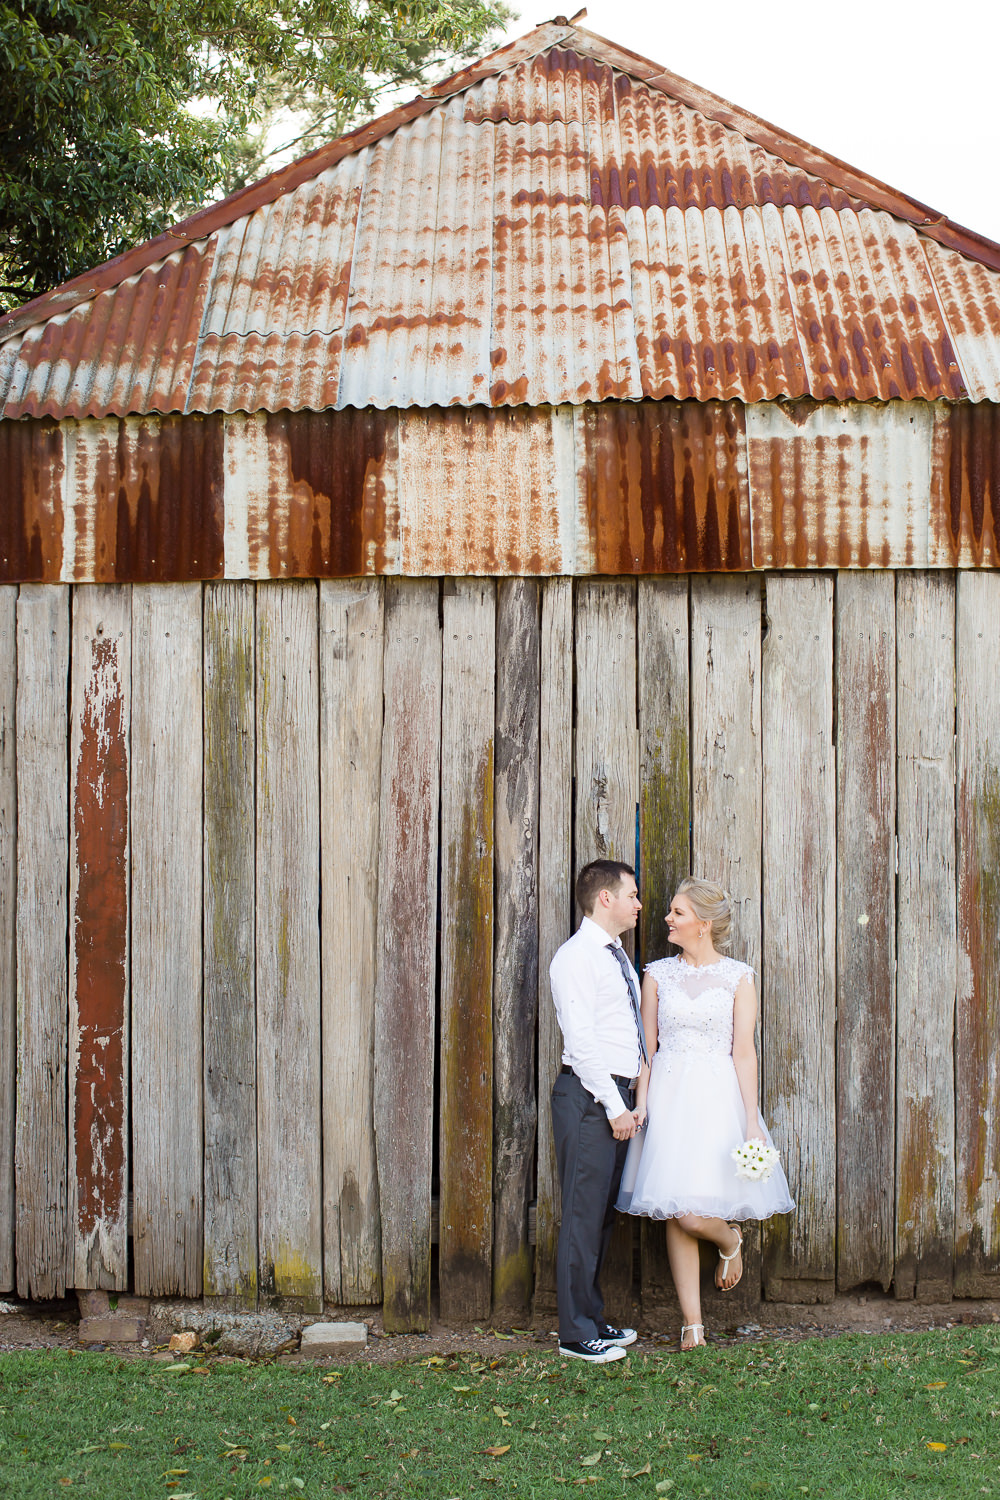 relaxed-wedding-non-traditional-wedding-gemma-clarke-phtography-australian-wedding-72